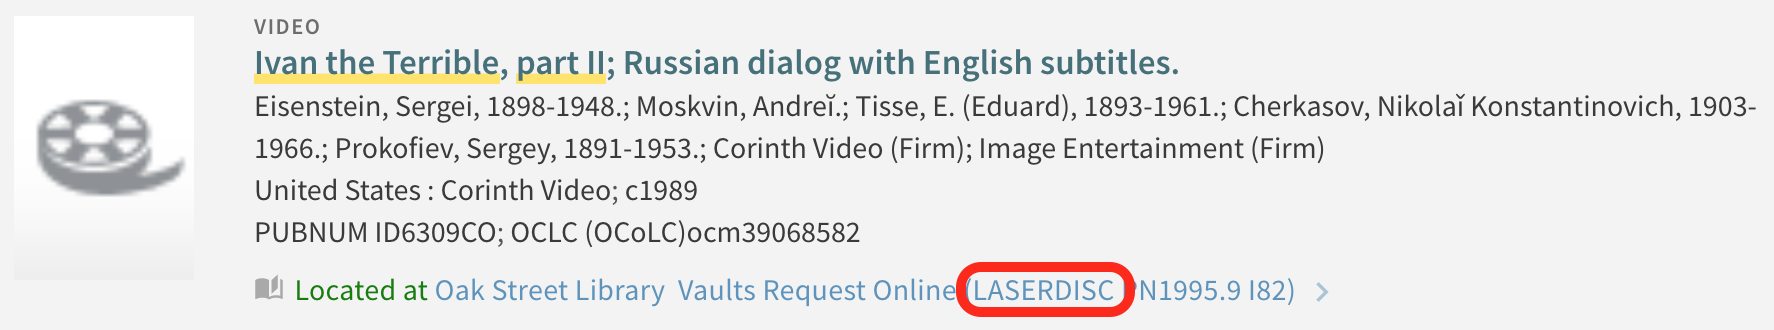 screenshot highlighting LASERDISC in call number